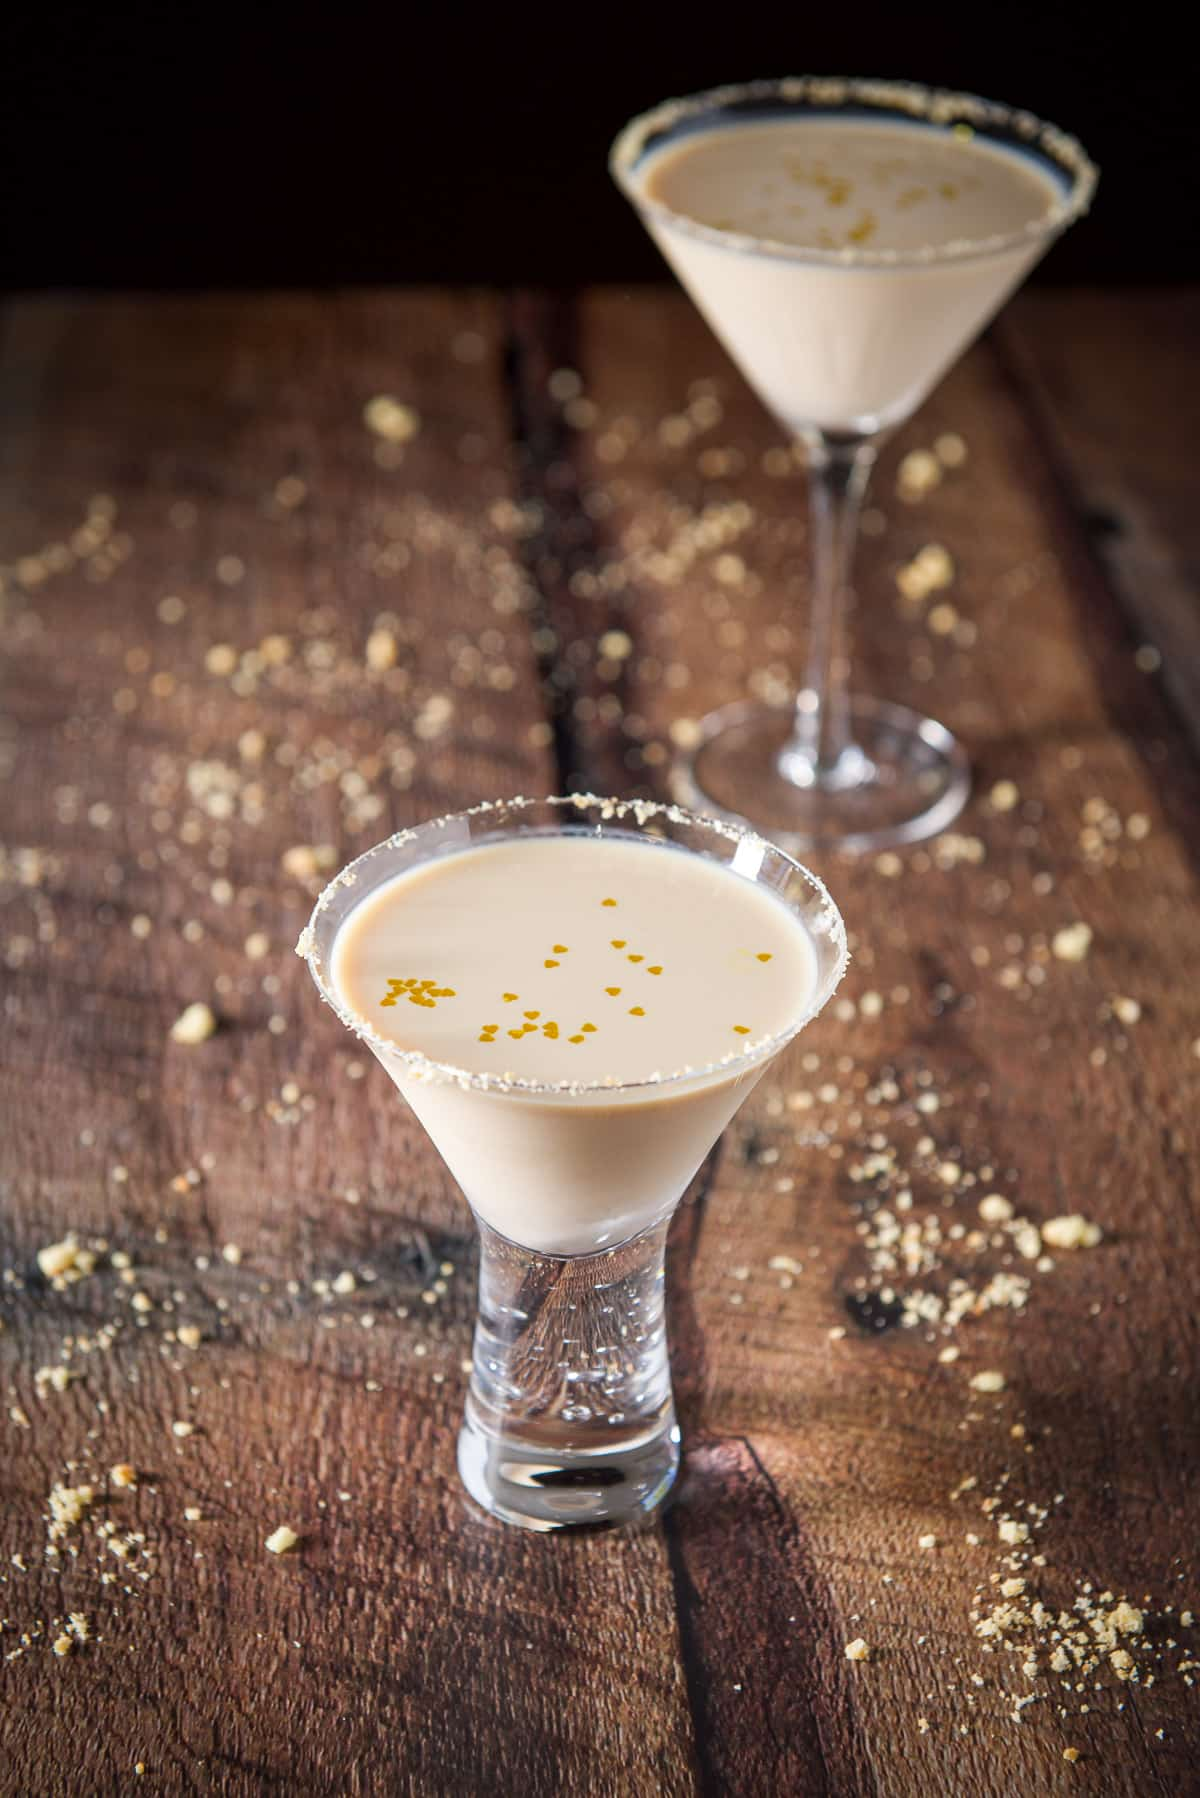 A short bubble glass with the cream drink with gold hearts floating in it. There is another glass and cookie crumbs on the table